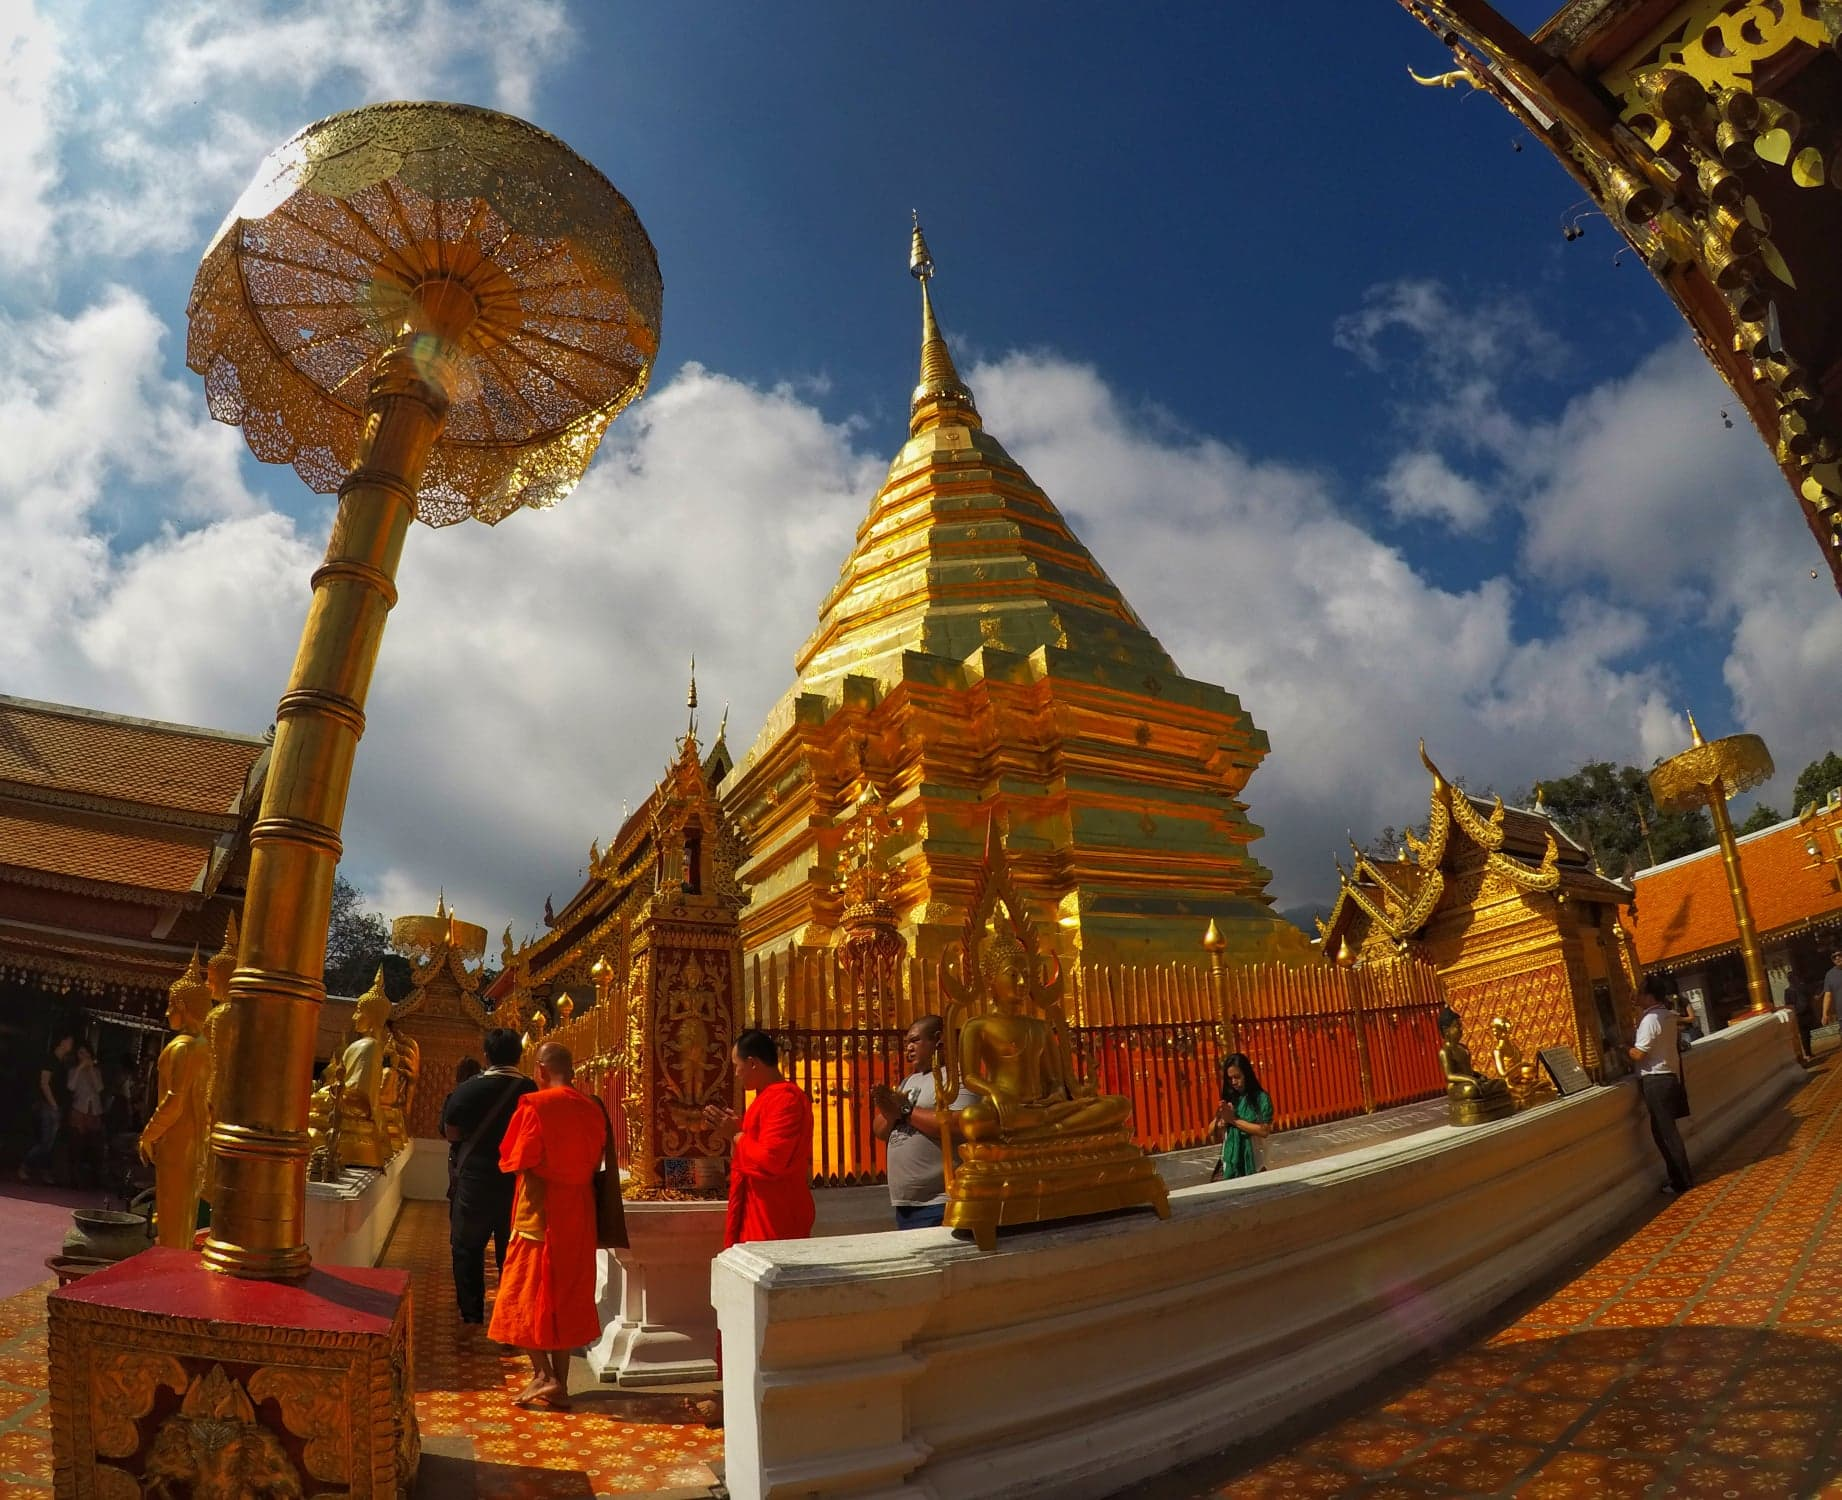 planning a trip to thailand - Wat Phra That temples